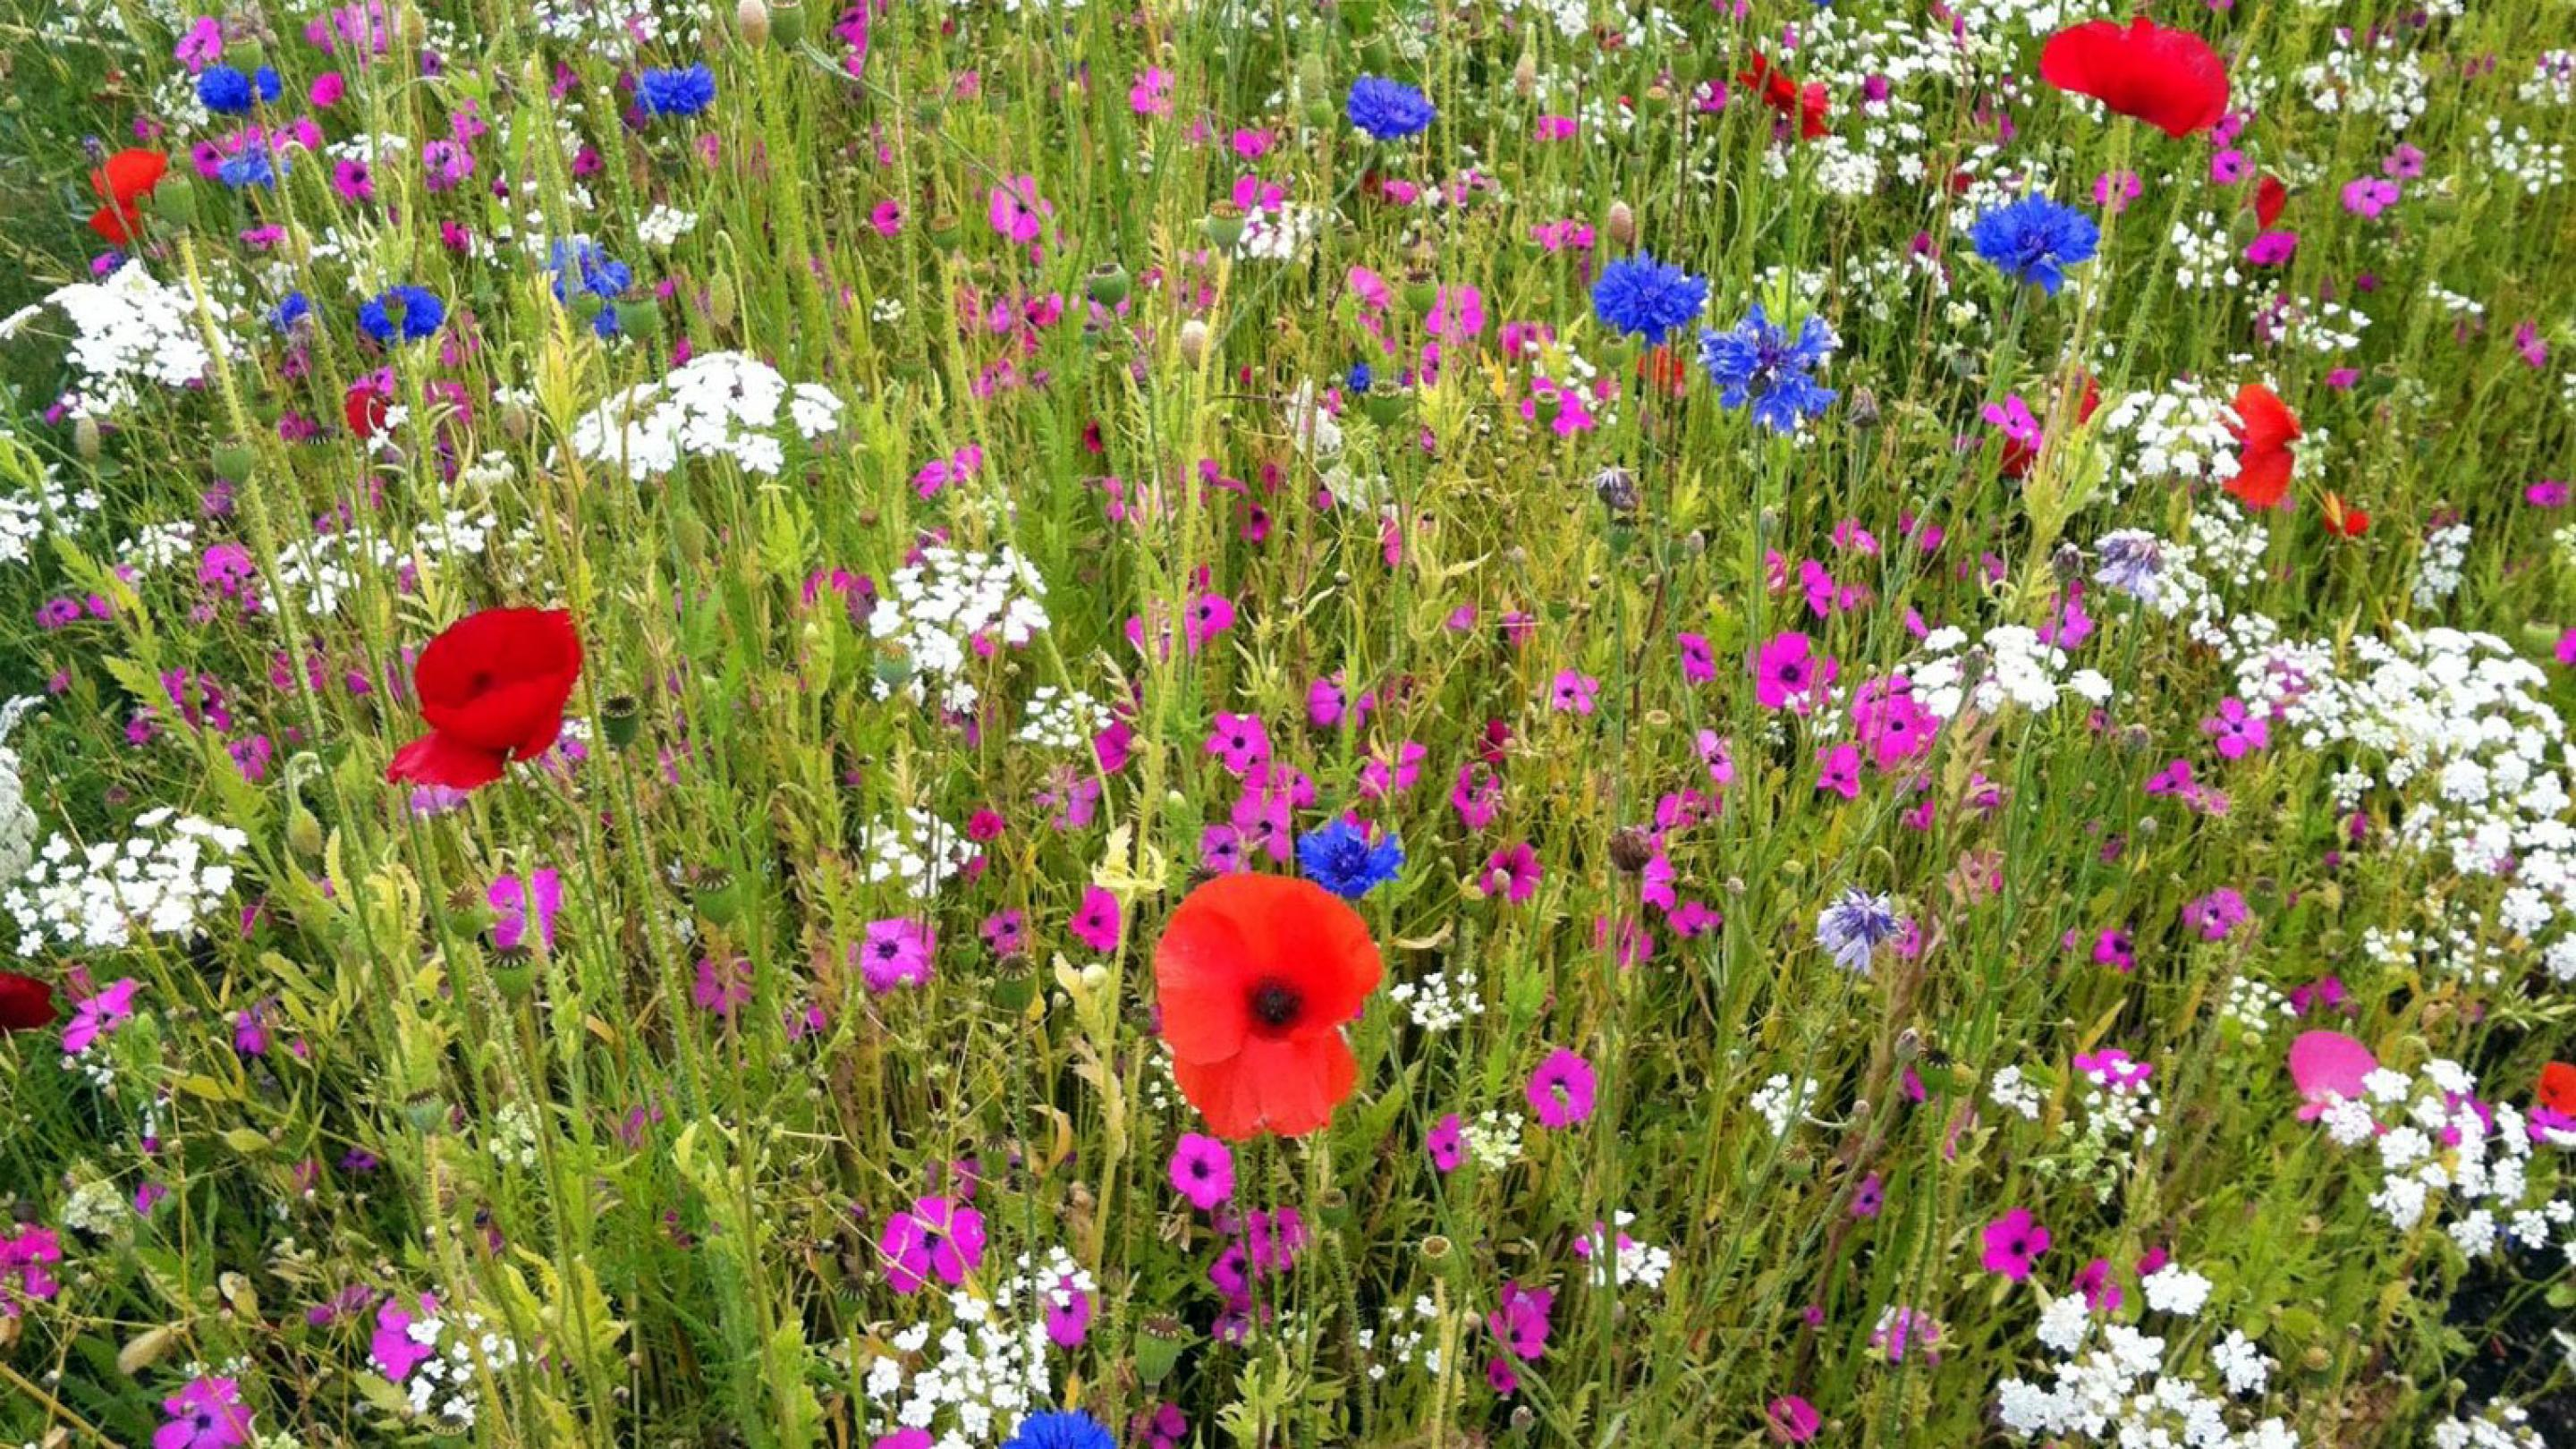 Wild flower meadows provide shelter and food for important pollinators including bees